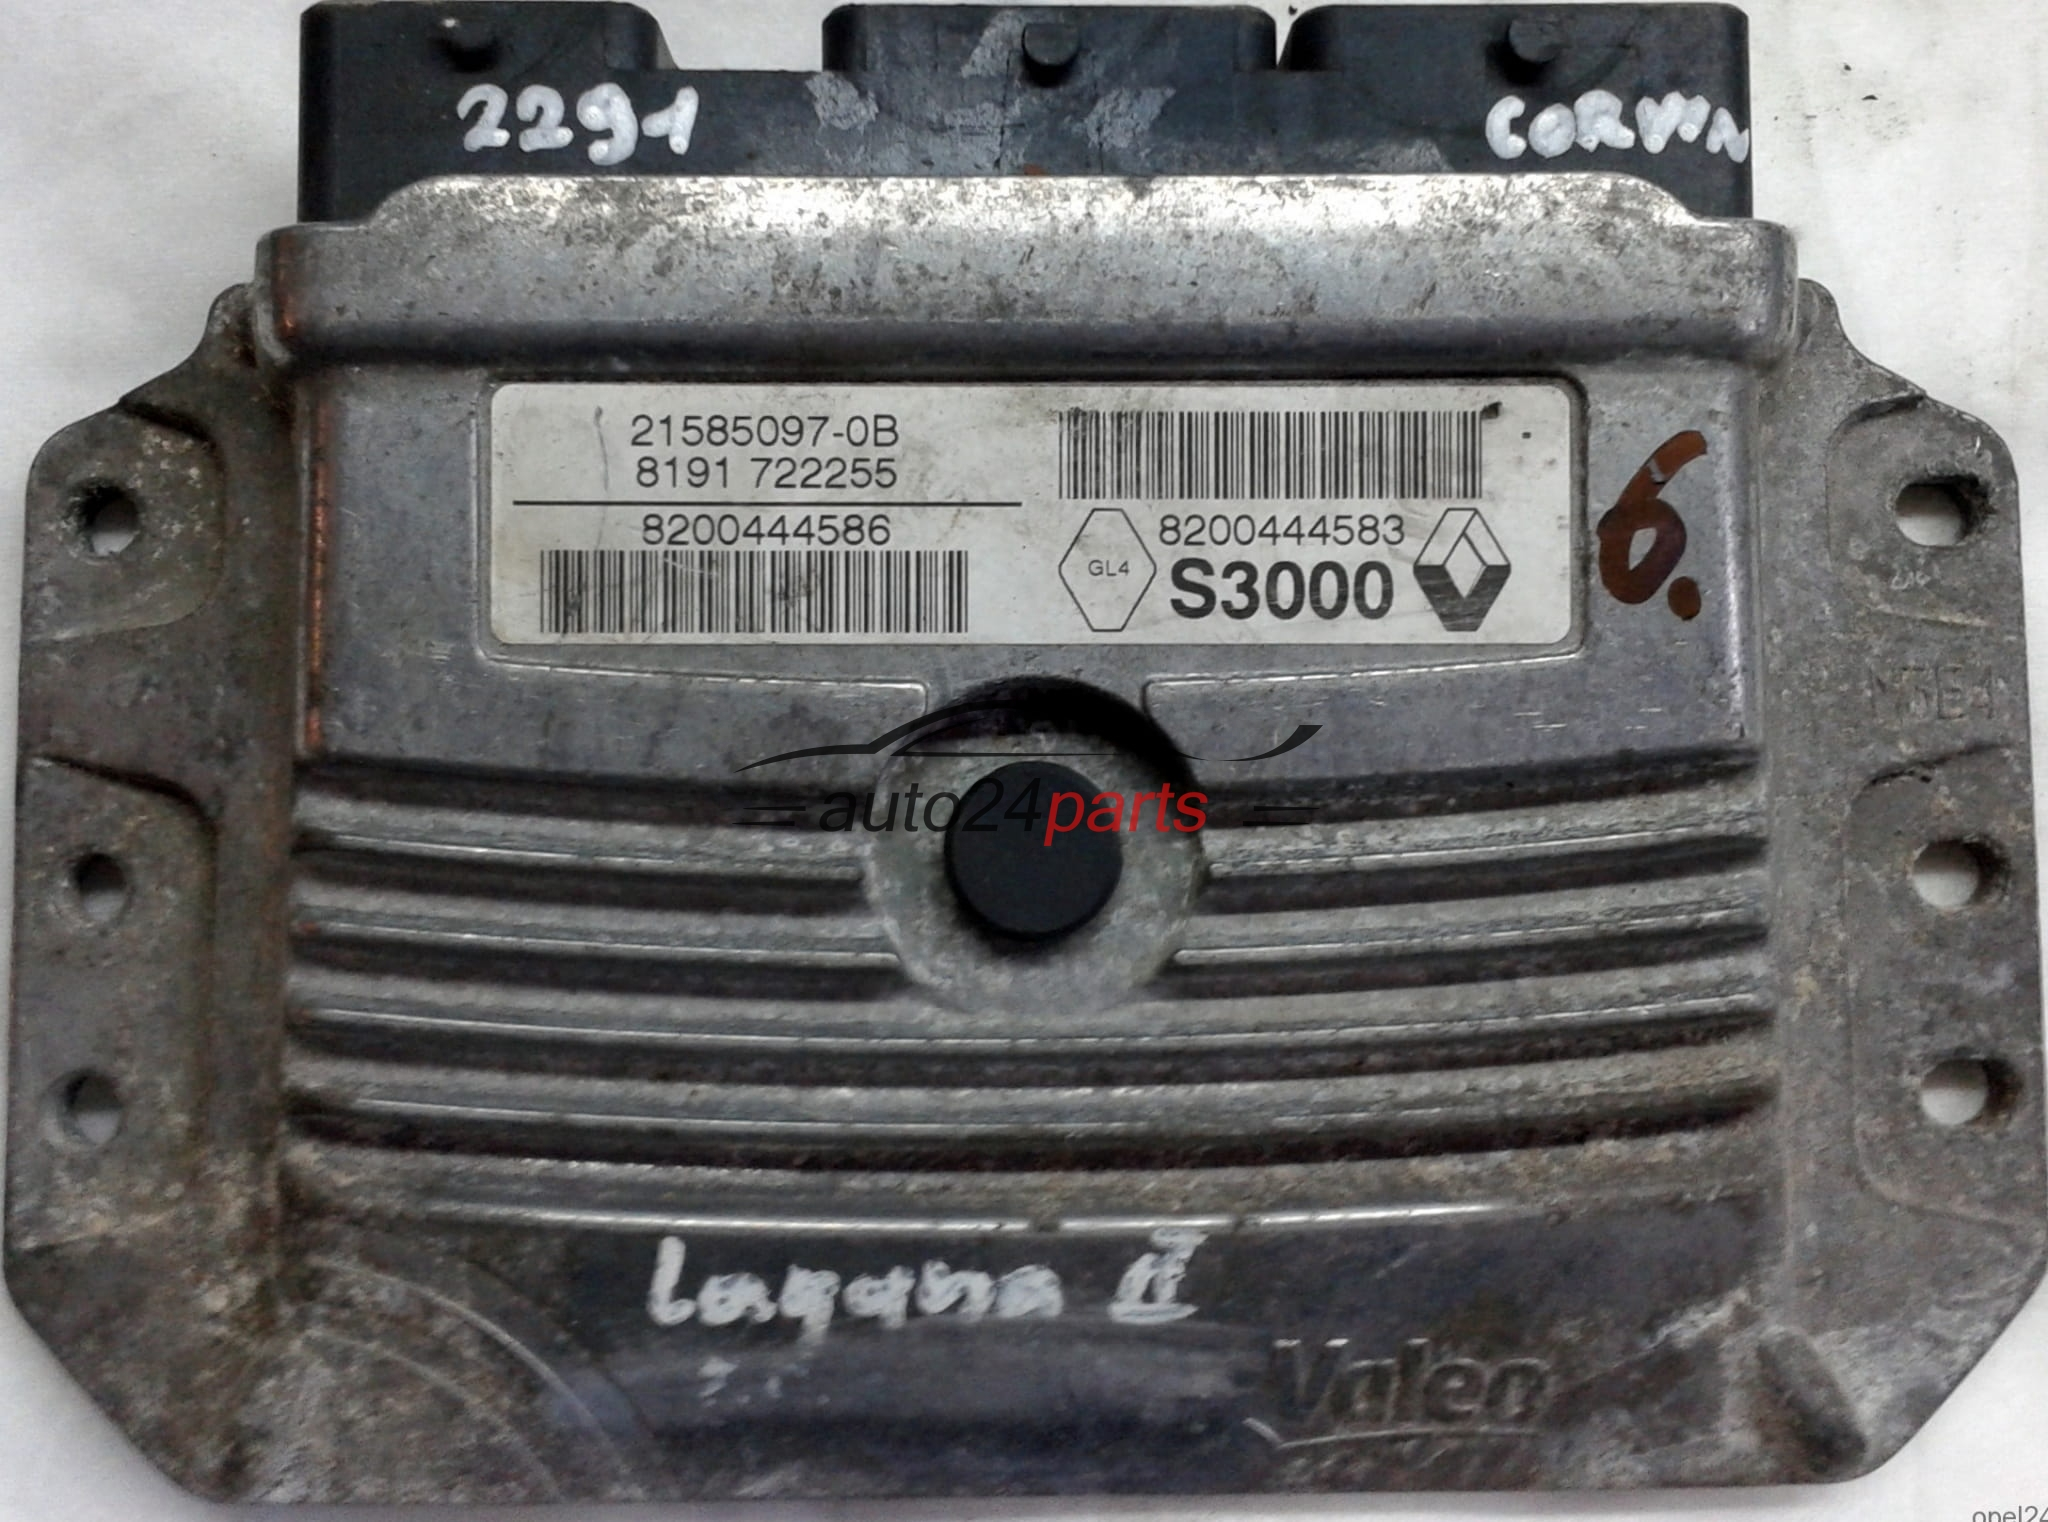 Hyundai Getz 2004 Ecu Connector Of A Model Showing Pictures